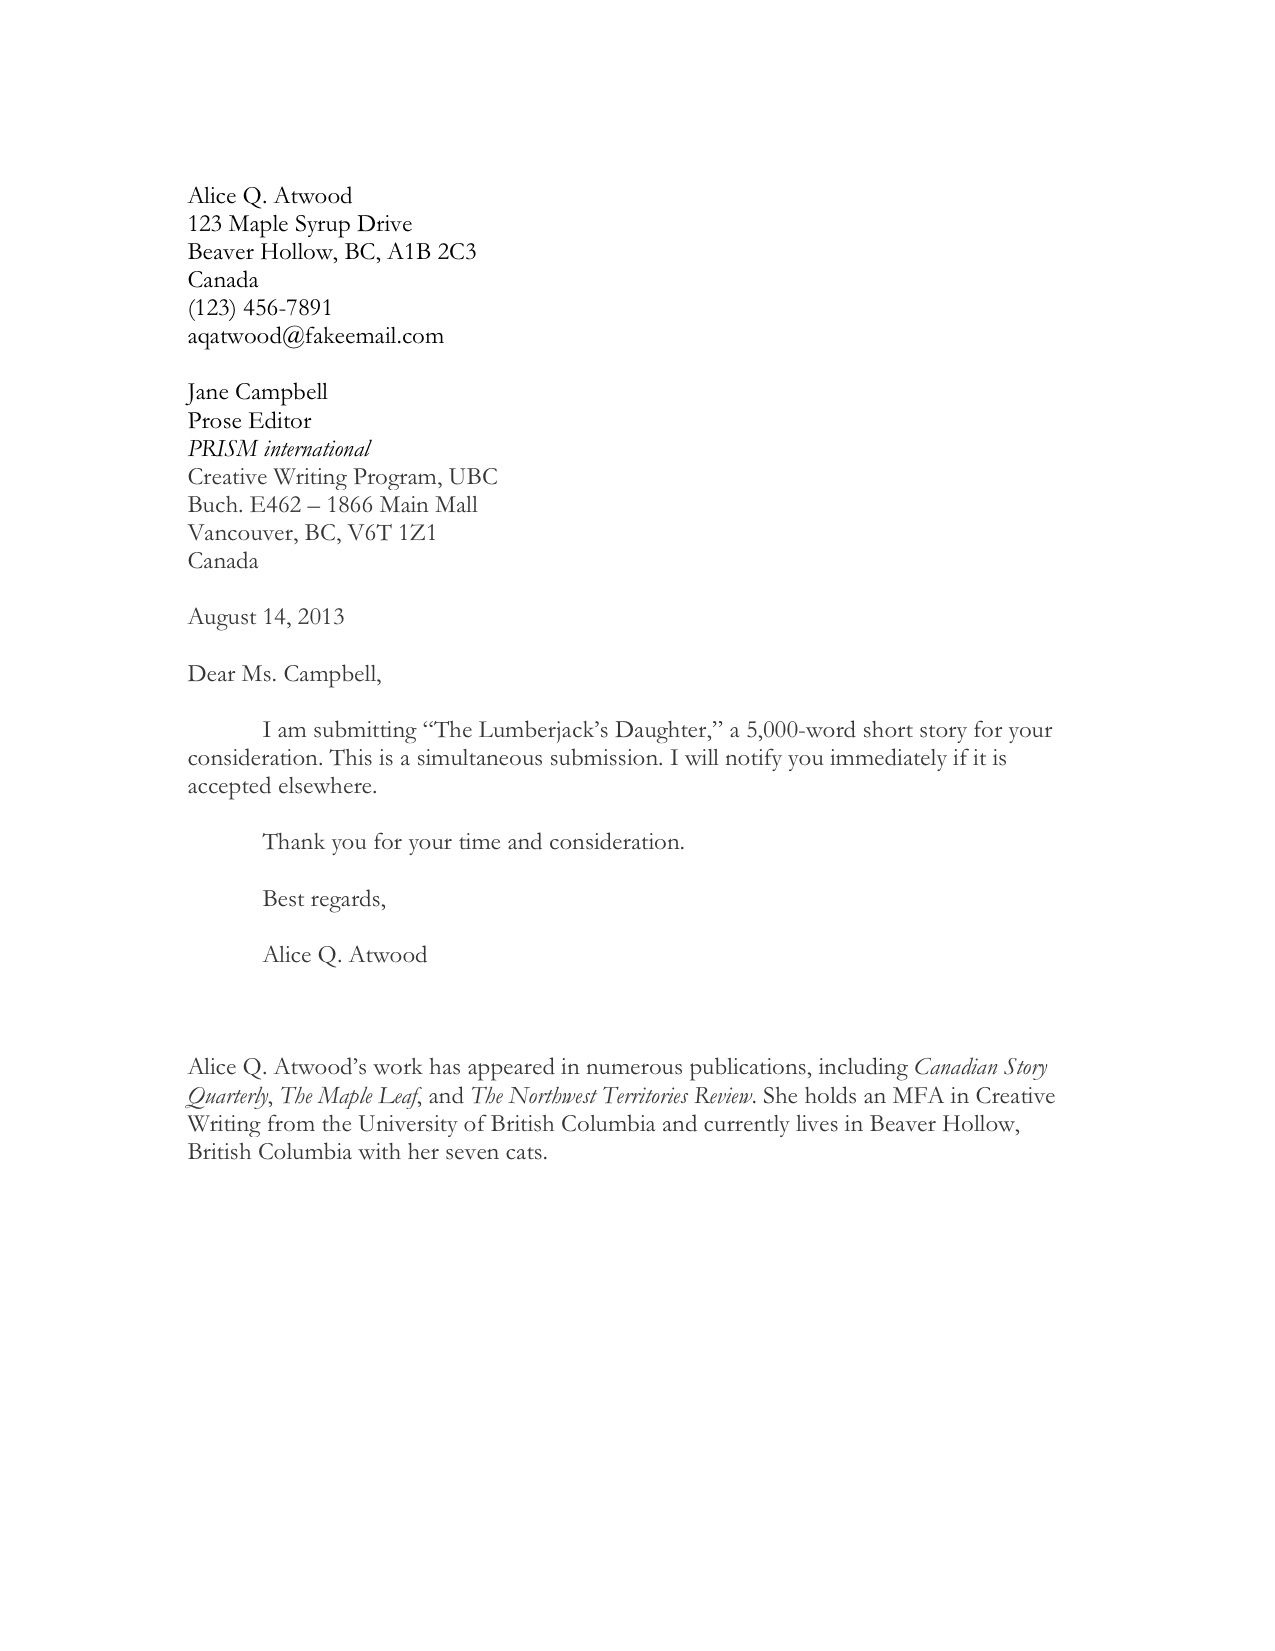 examples of a cover letter formal business letter format templates